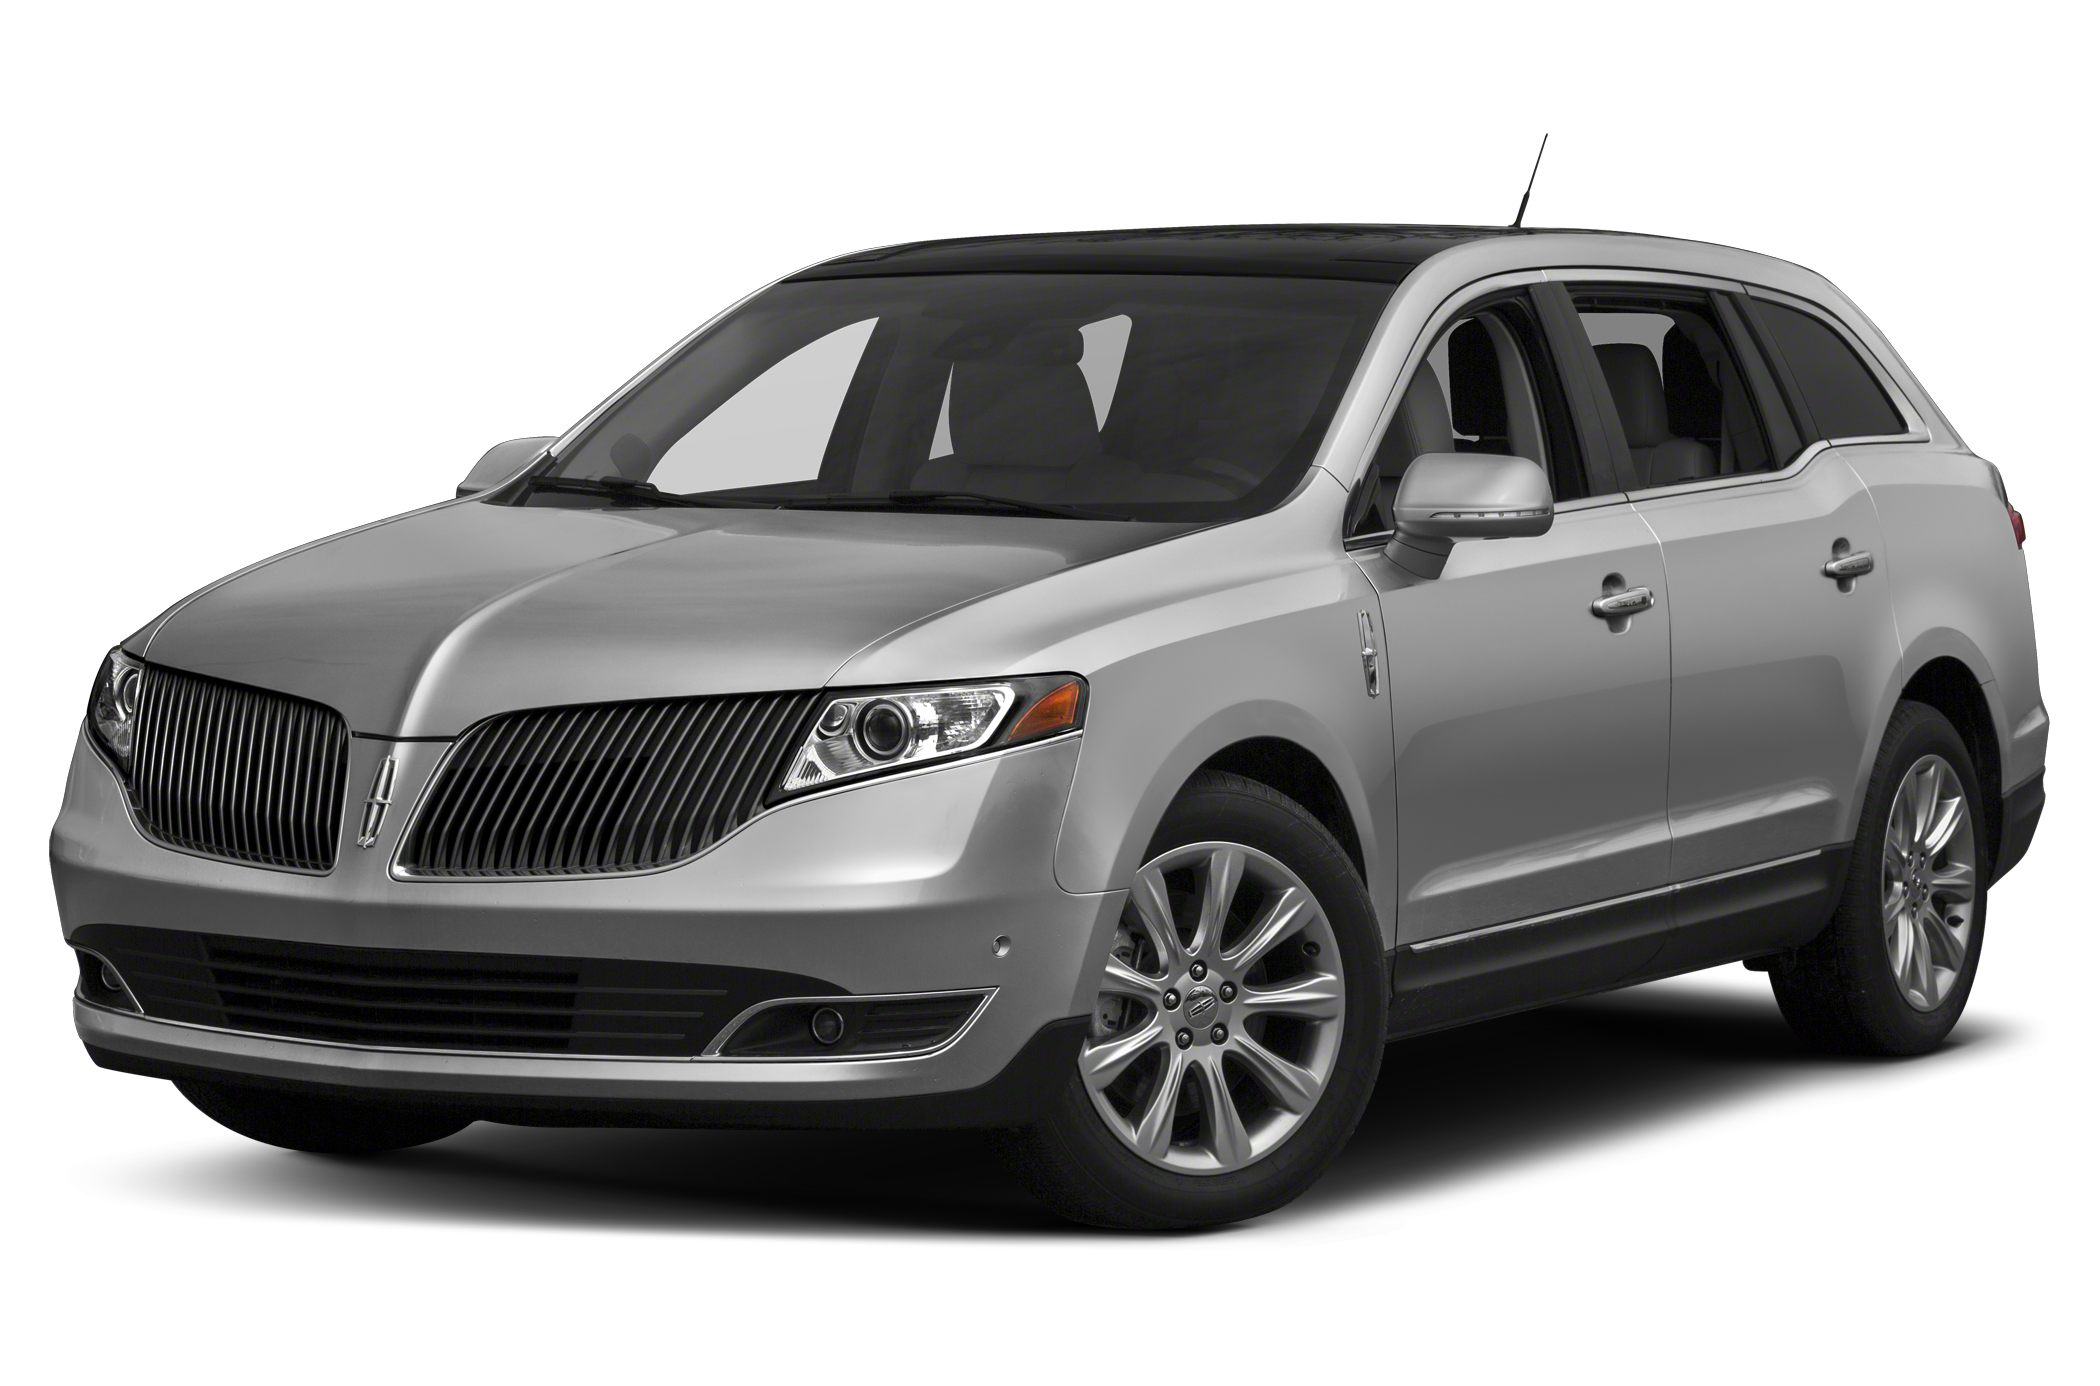 2014 Lincoln MKT EcoBoost Wagon for sale in Bartlesville for $55,345 with 10 miles.